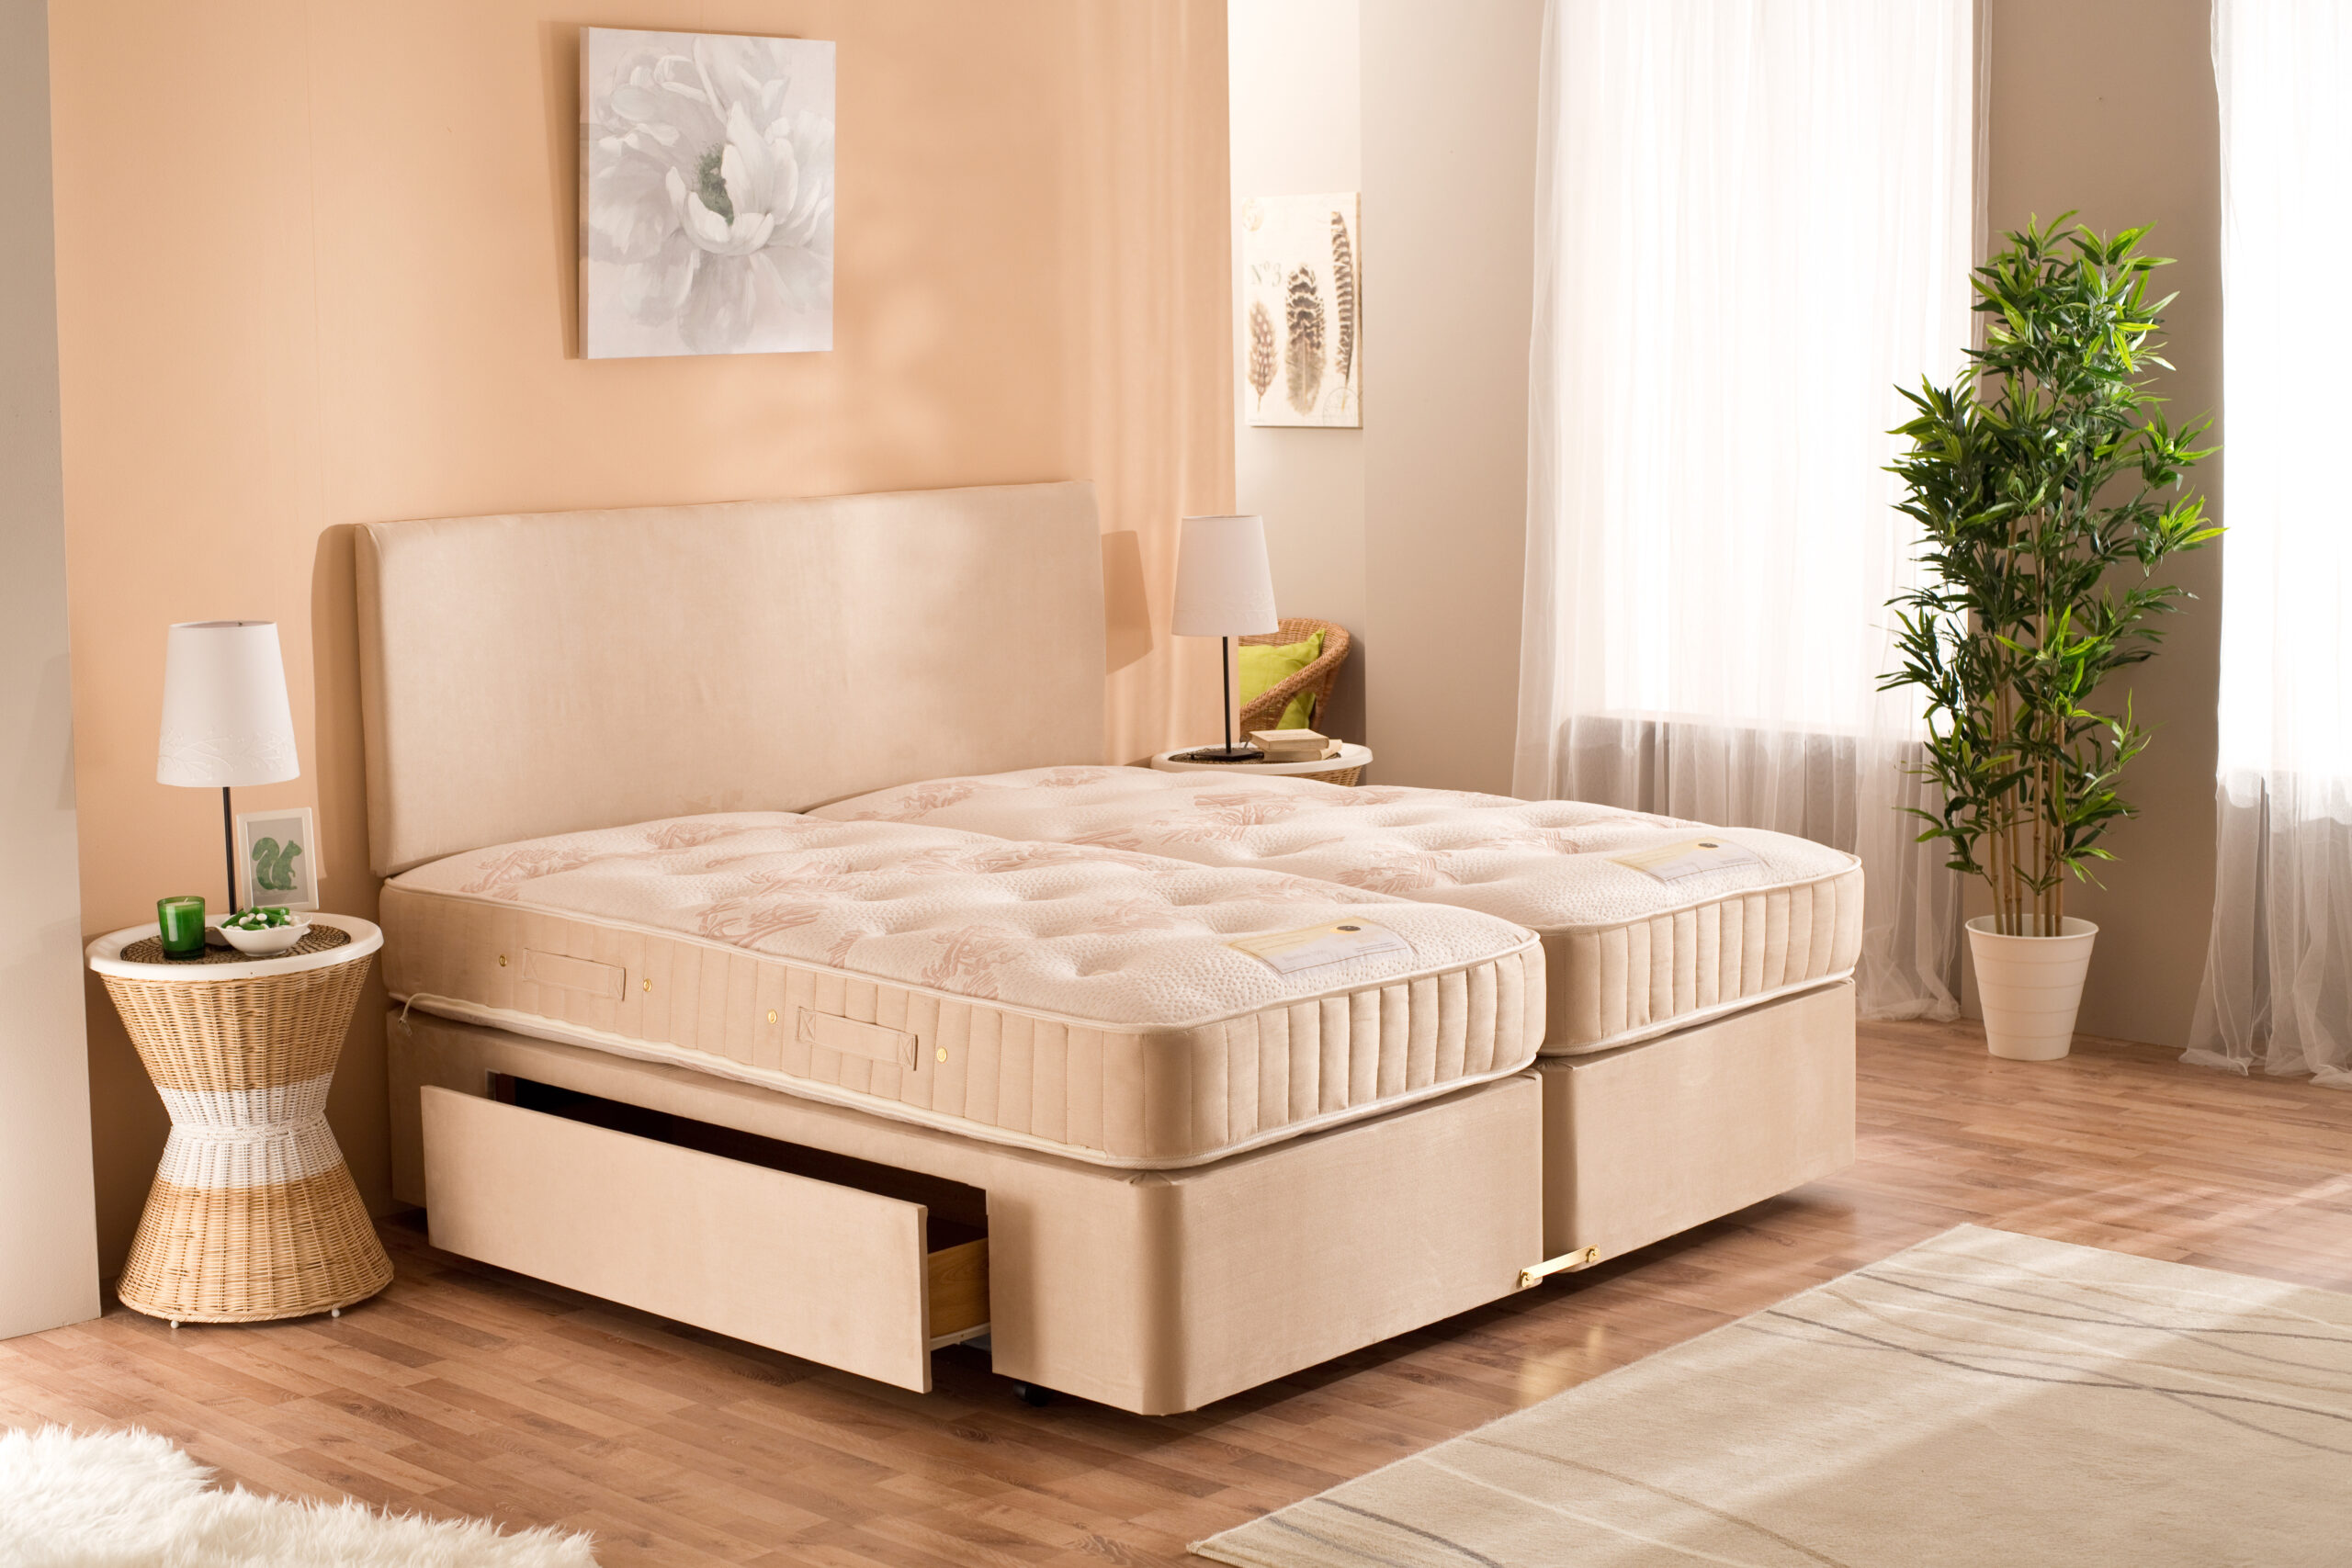 Bamboo bed by Moonraker